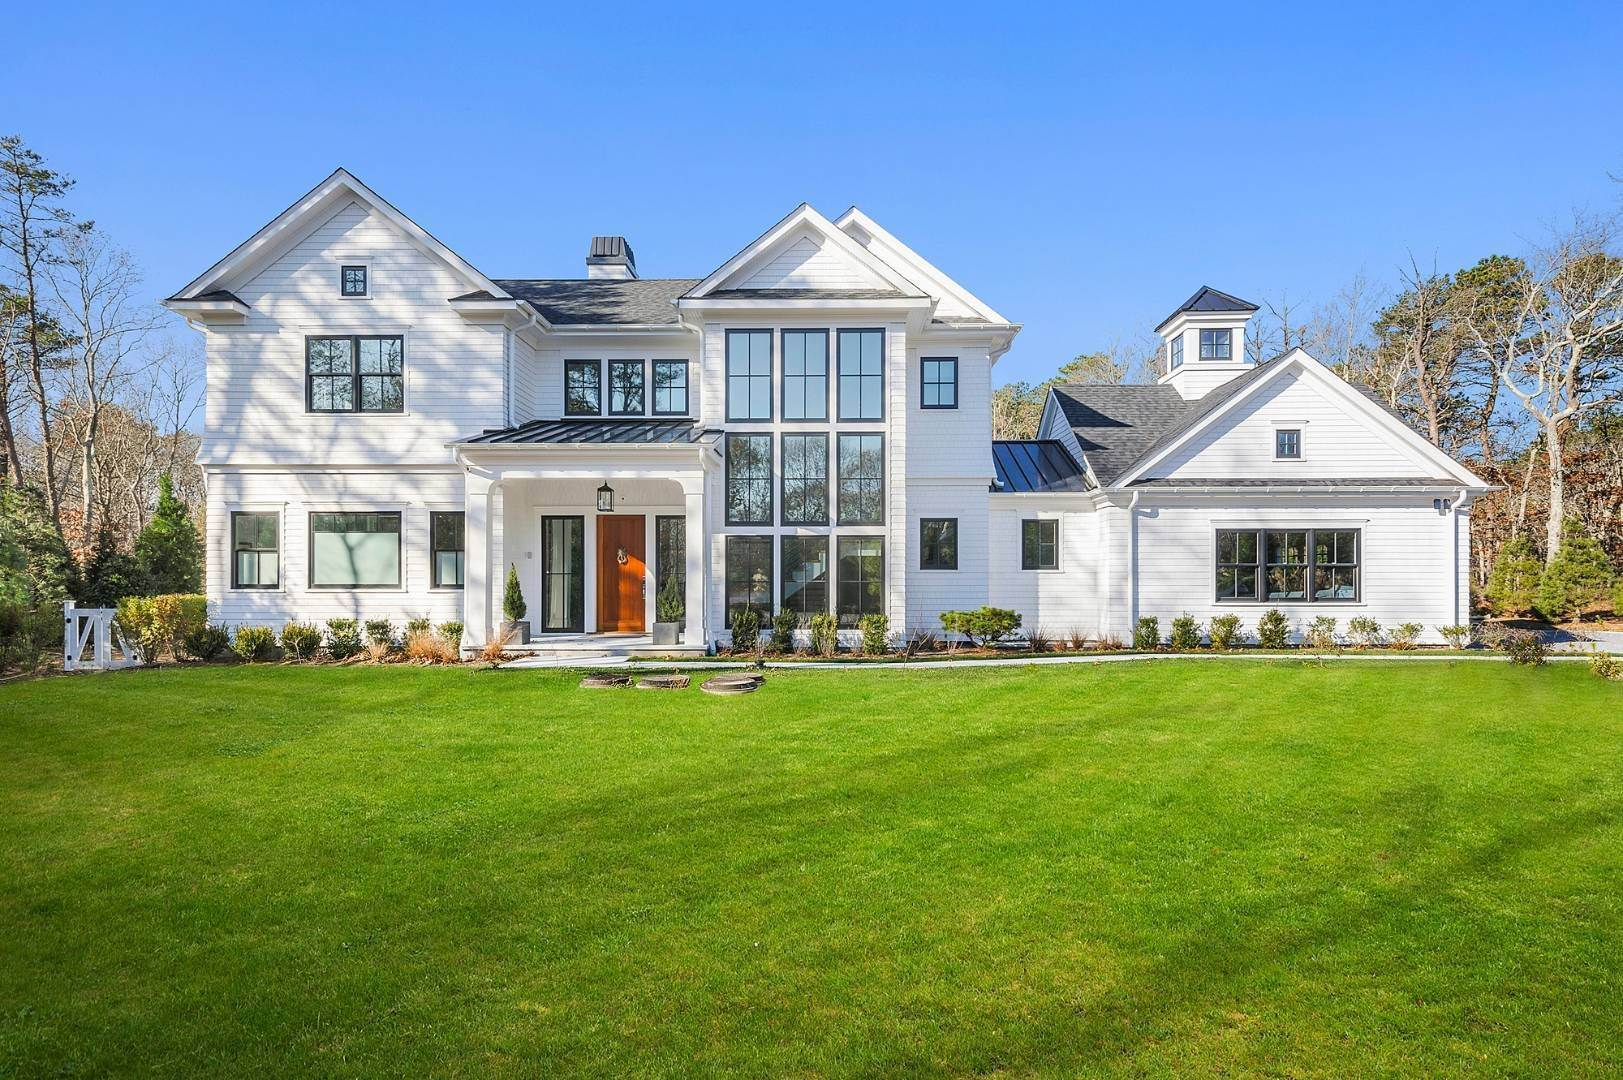 Single Family Home at East Hampton Contemporary Wainscott, NY 11975